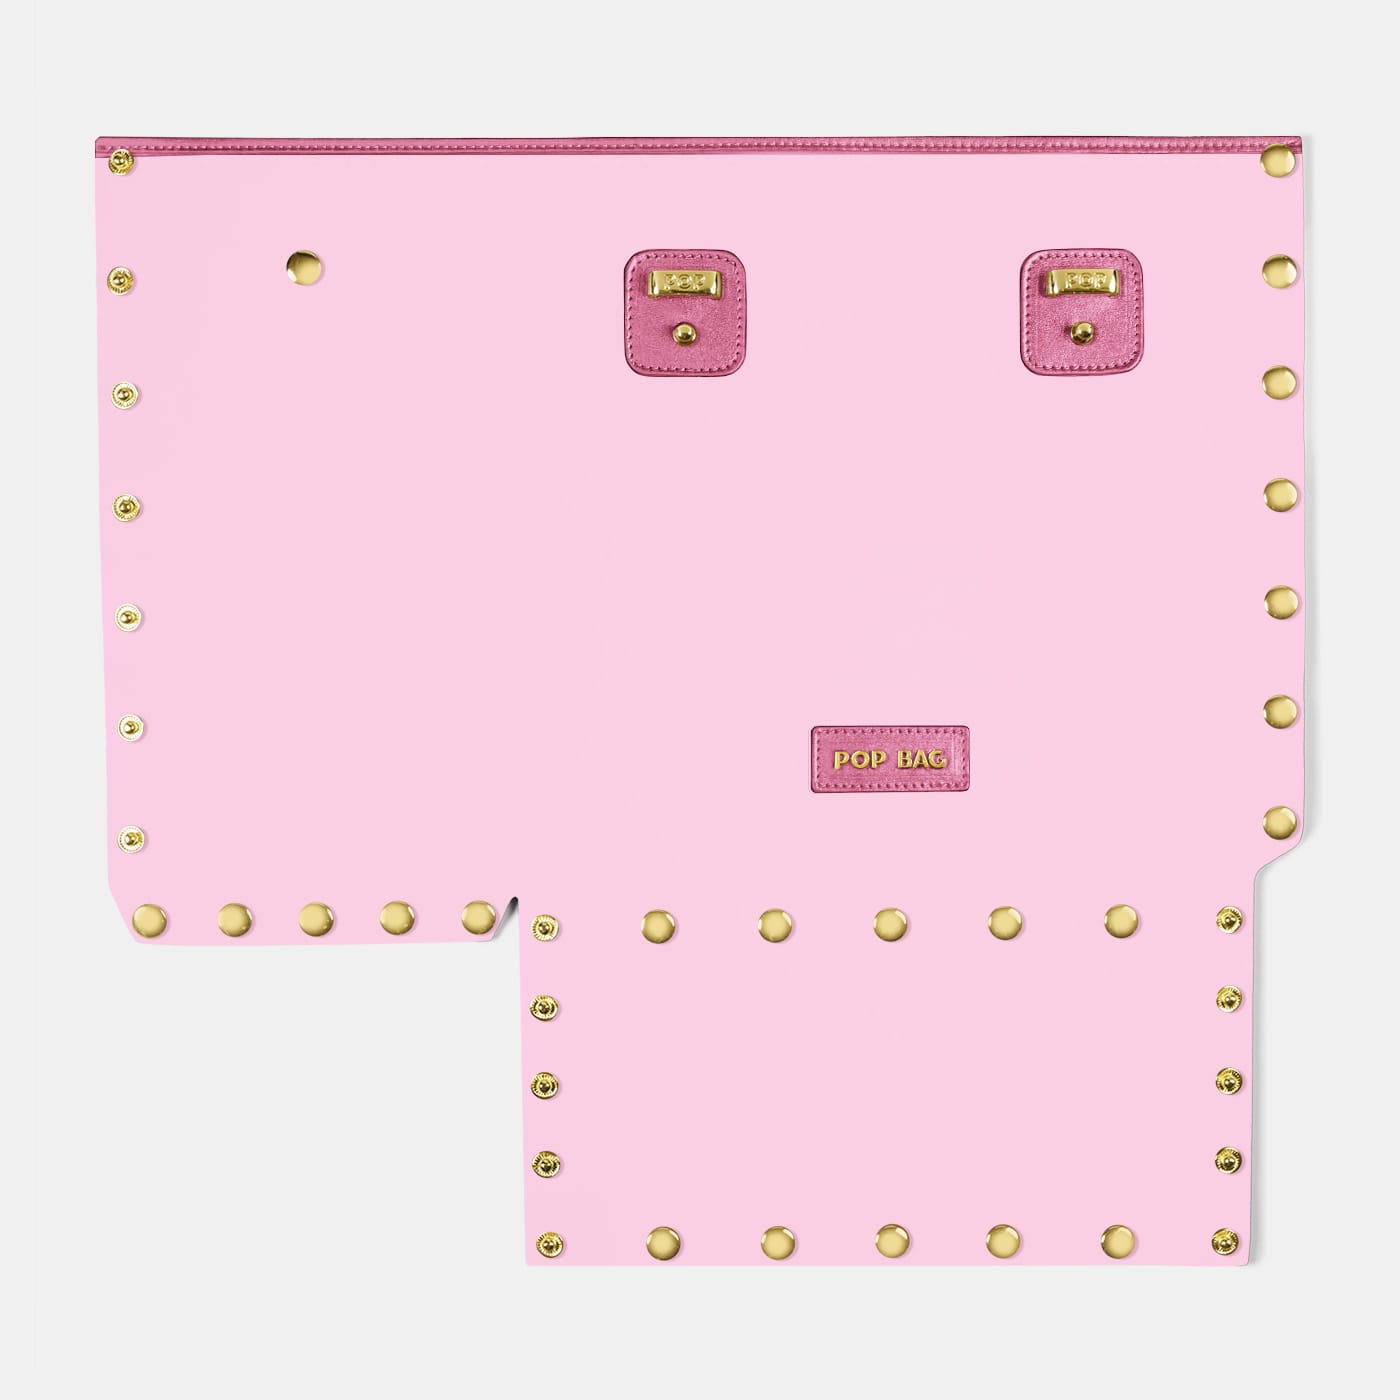 Pop Crystal Front Panel - Pink  - Medium